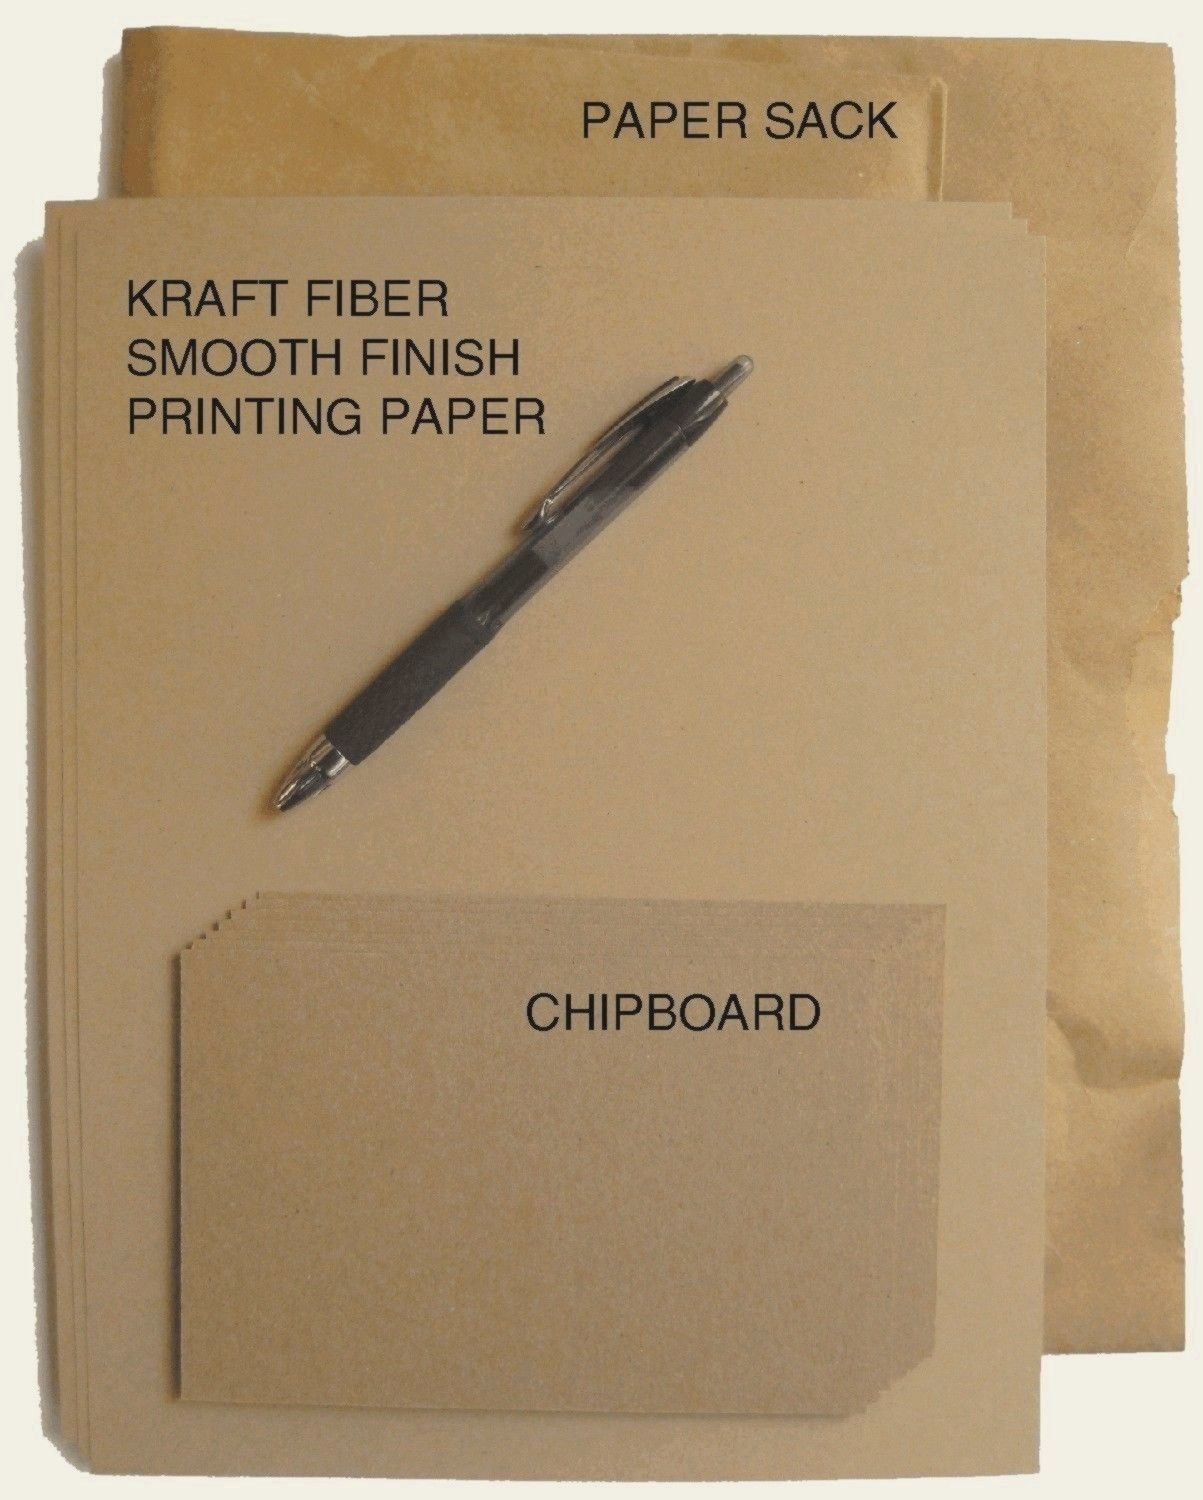 2000 Brown Kraft Fiber 70 Pound Text (Not Card/Cover) Paper Sheets - 8.5'' X 14'' - 104 gsm Weight (8.5X14 Inches) Legal|Menu Size - Rich Earthy Color with Natural Fibers - Smooth Finish